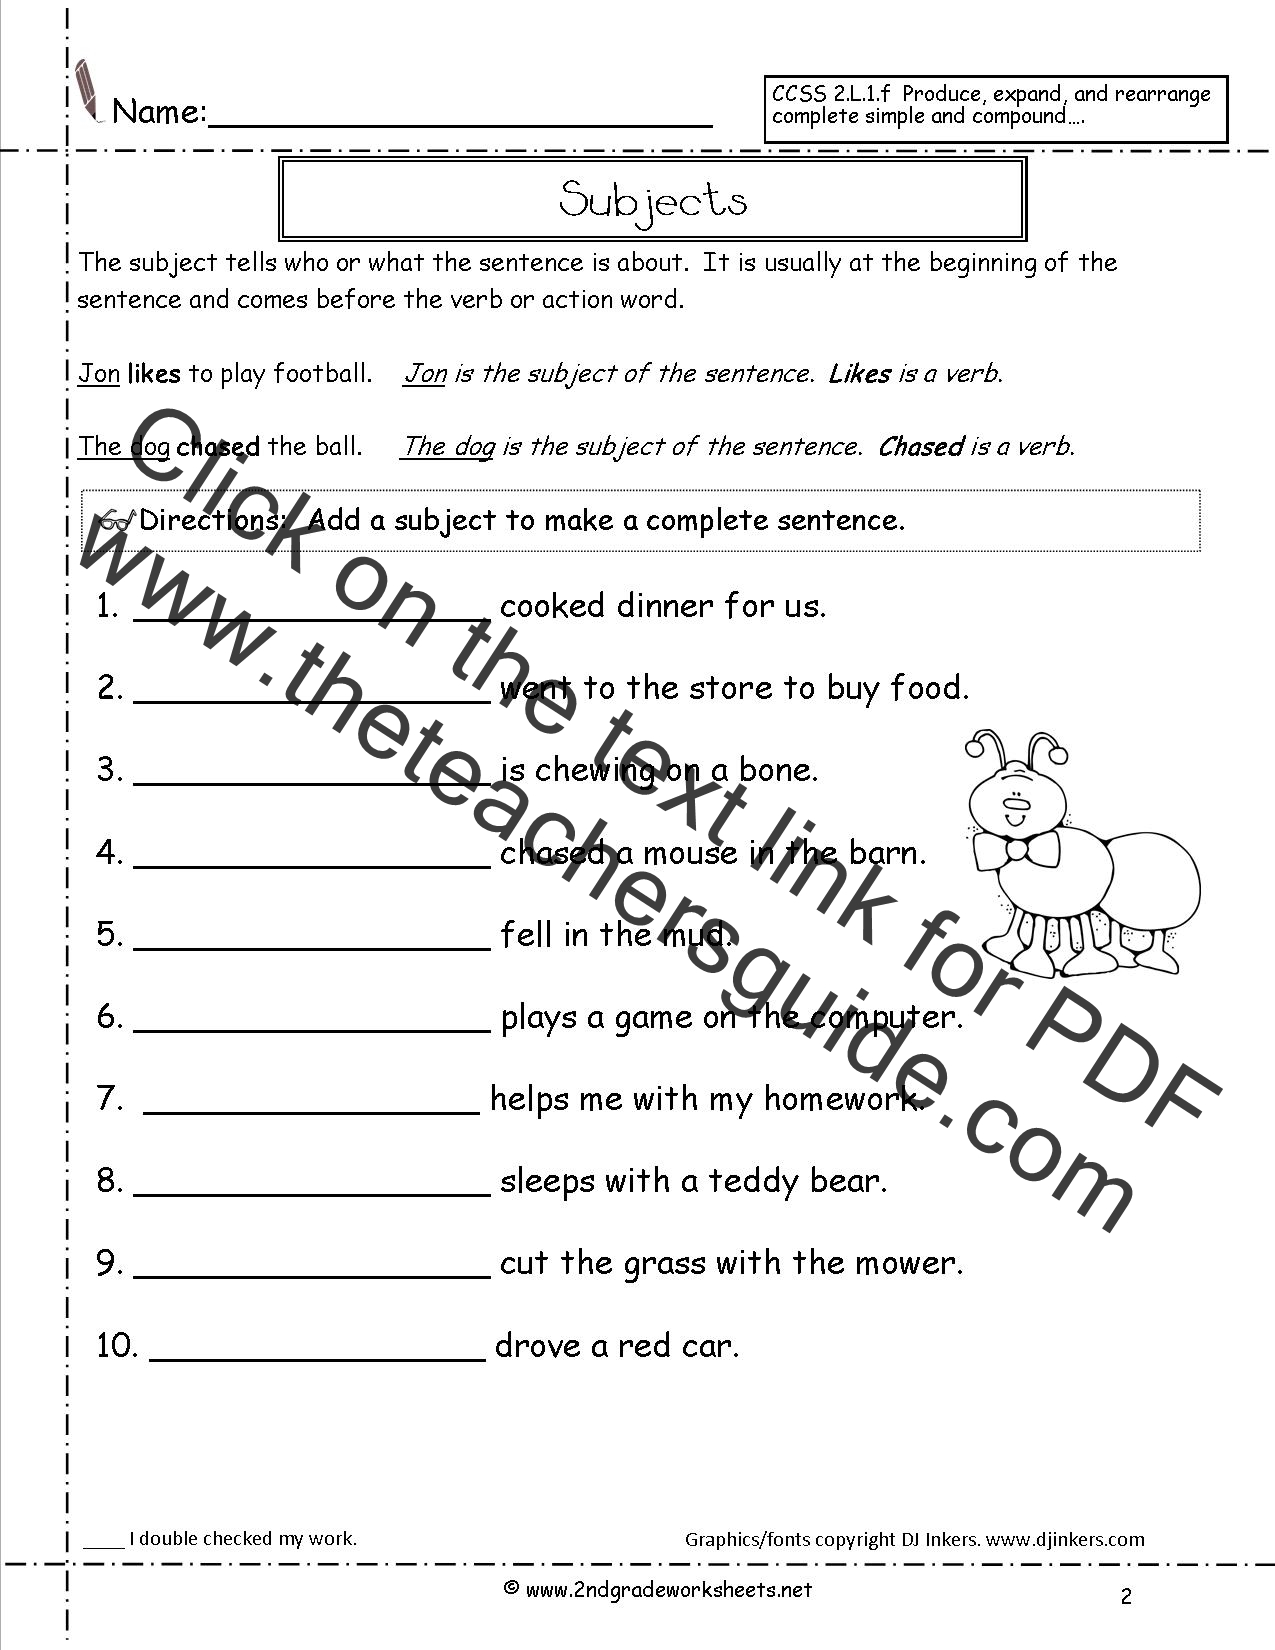 Subjectworksheet2